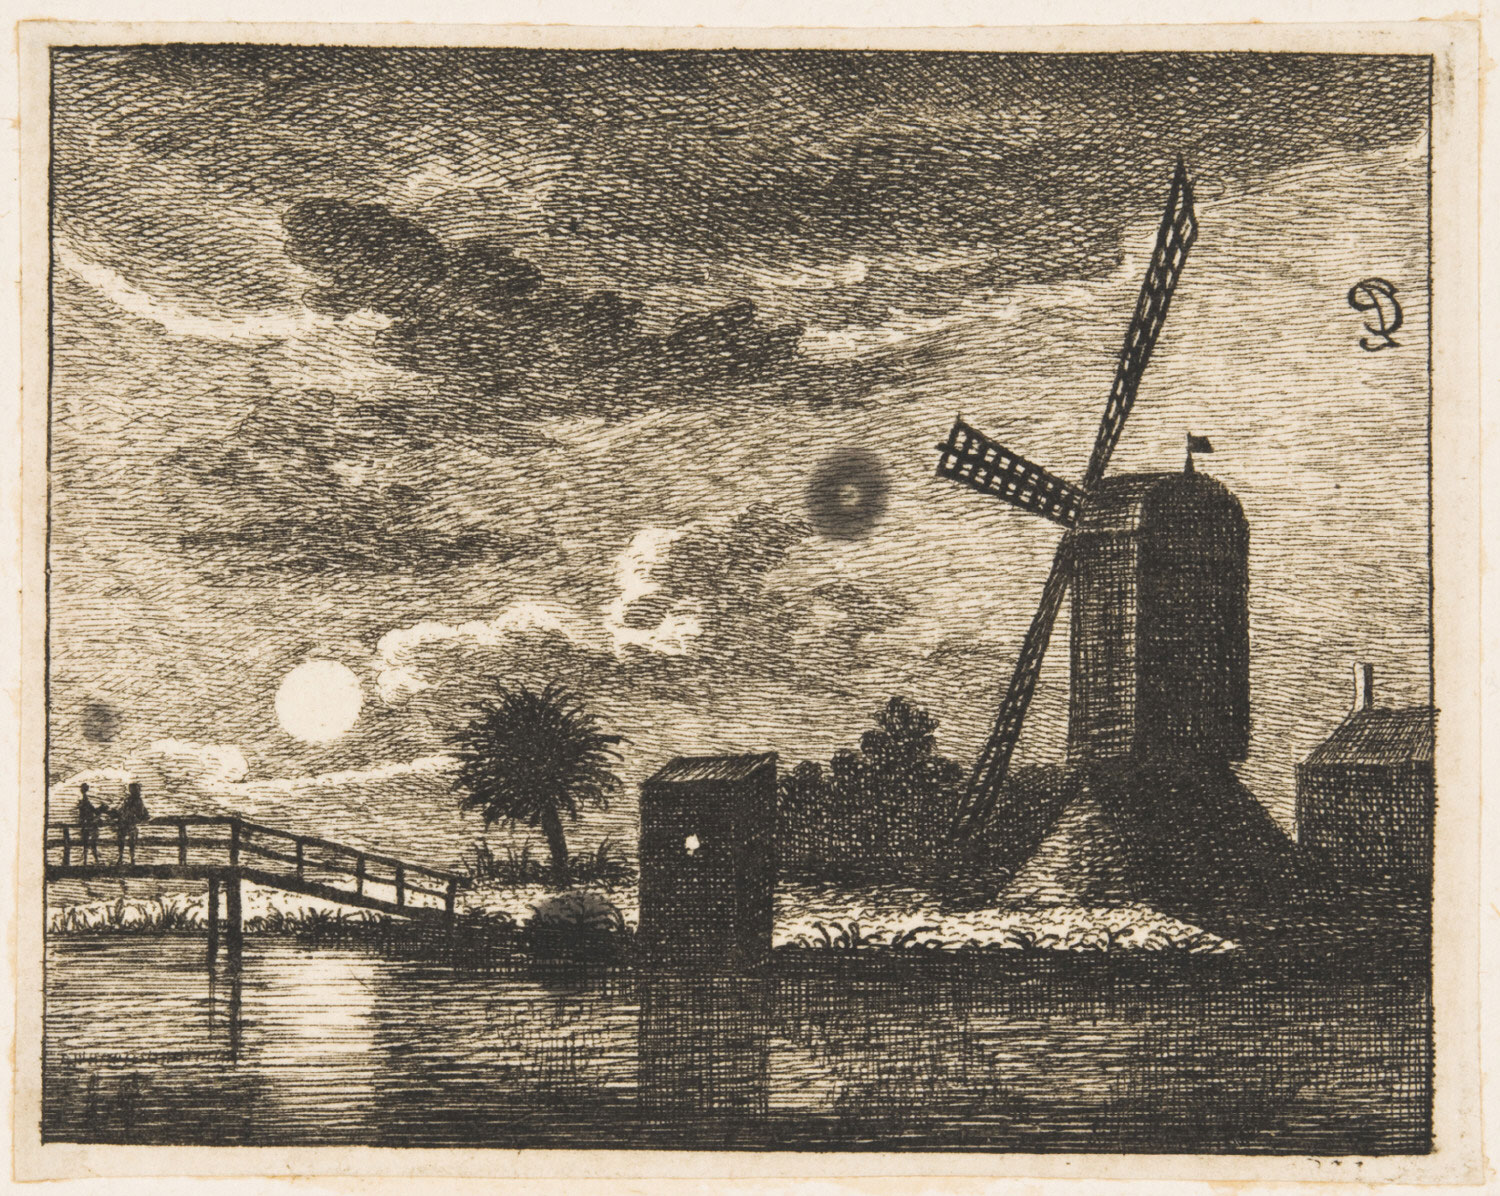 Landscape by Moonlight with Windmill